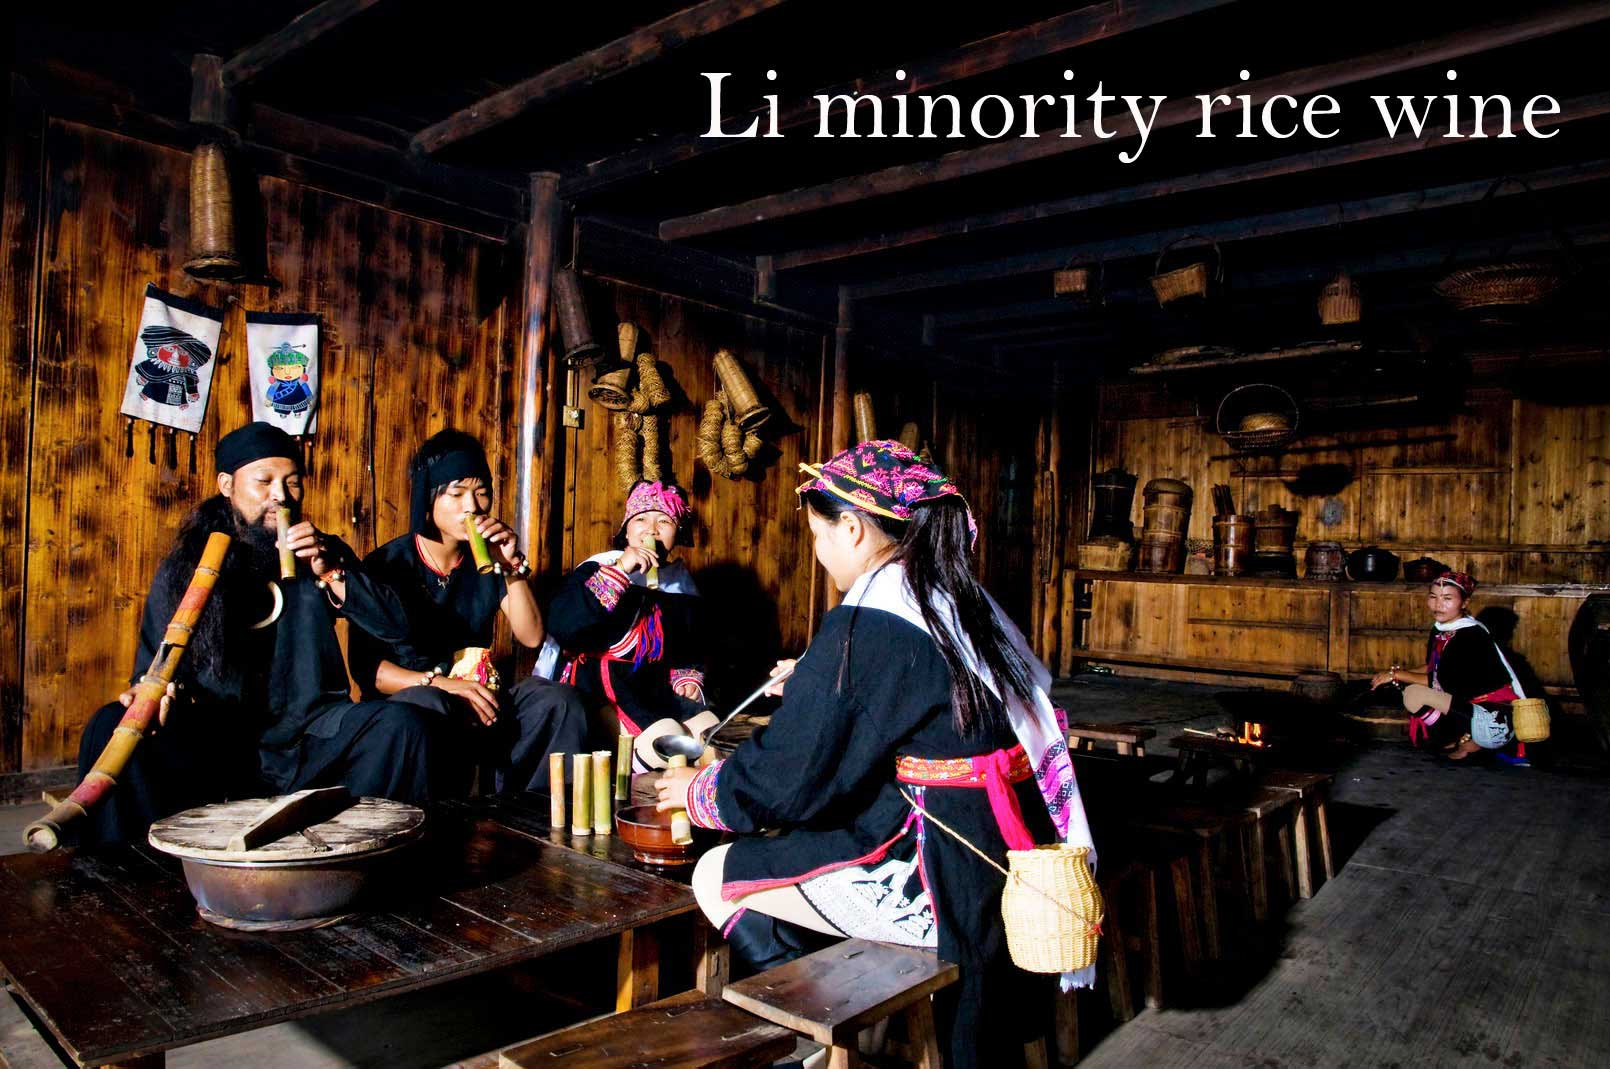 Li minority rice wine